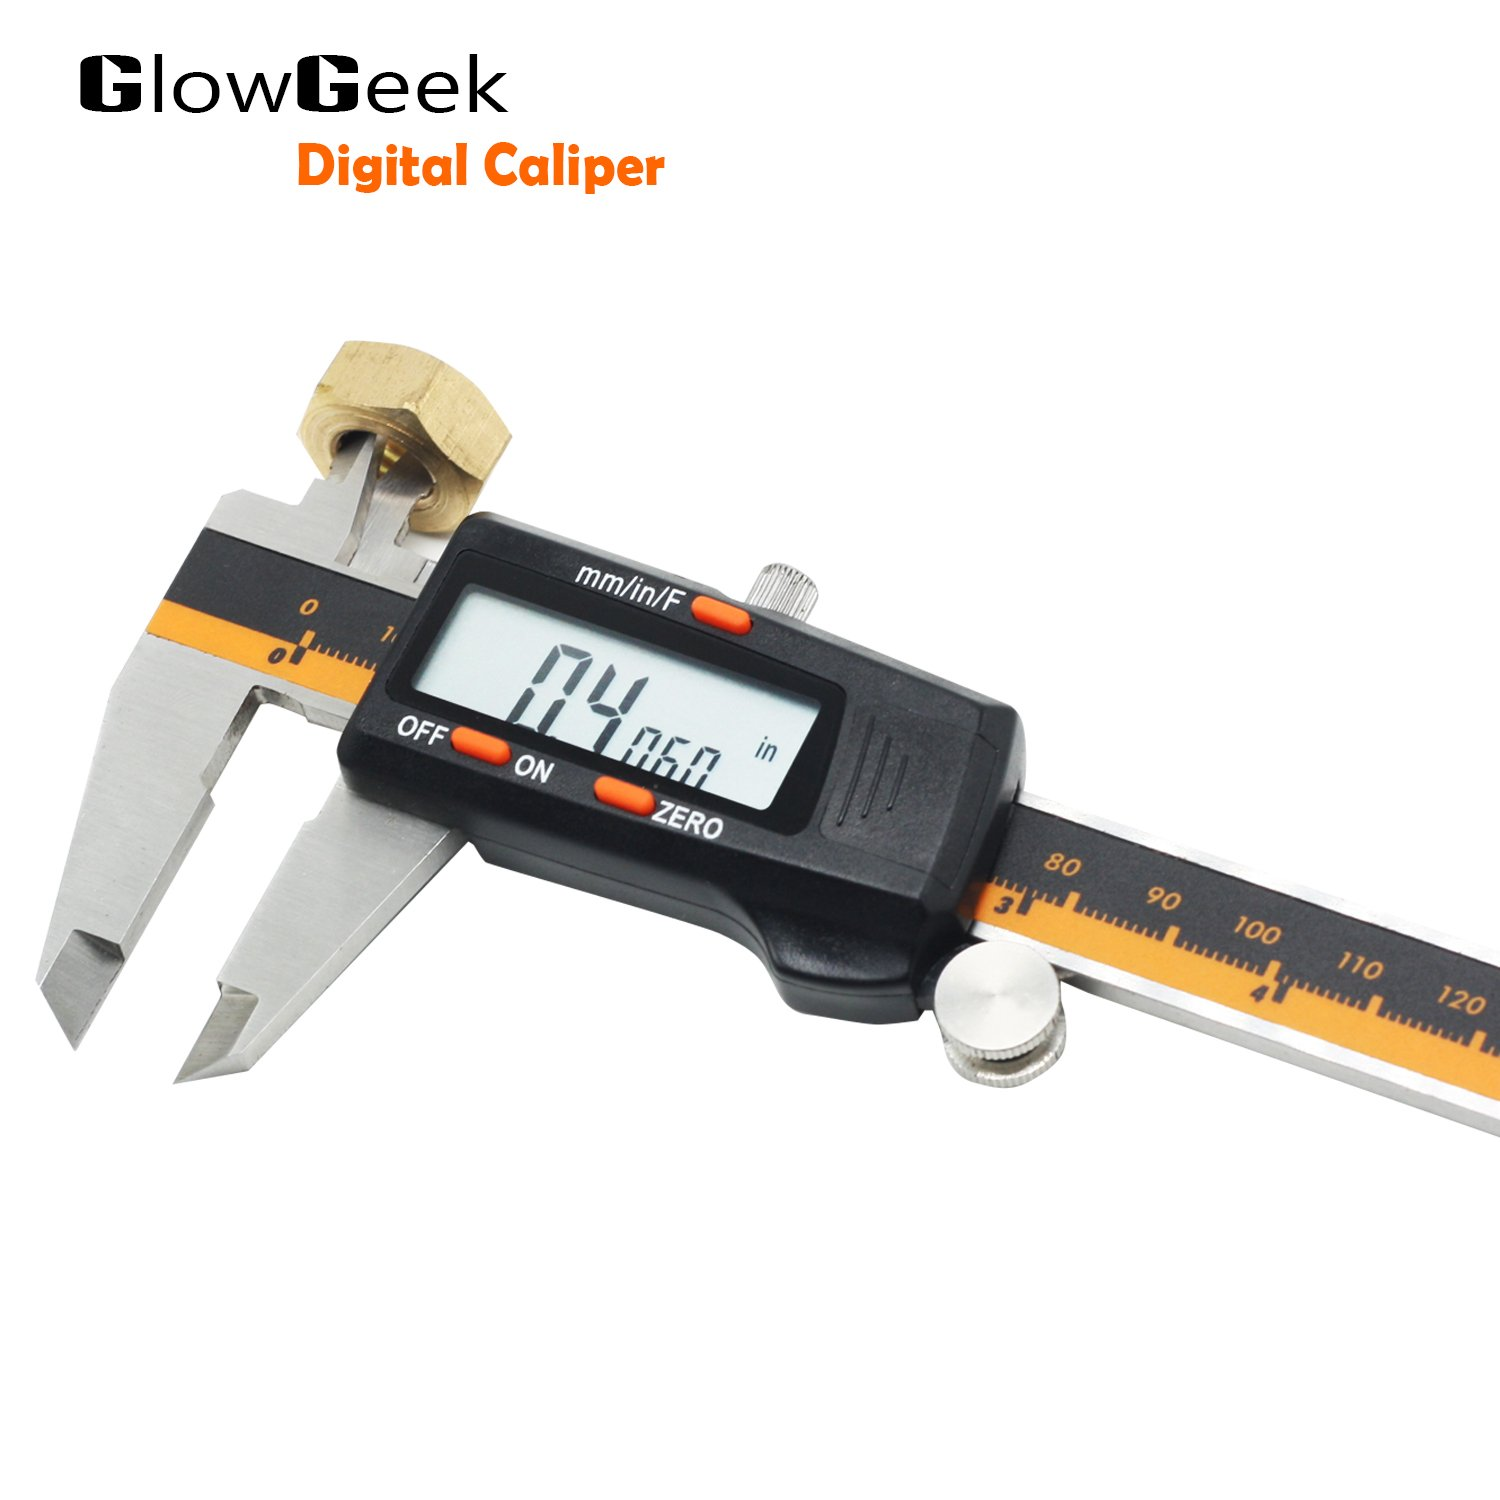 GlowGeek Electronic Digital Caliper Inch/Metric/Fractions Conversion 0-6 Inch/150 mm Stainless Steel Body Orange/Black Extra Large LCD Screen Auto Off Featured Measuring Tool by GlowGeek (Image #8)